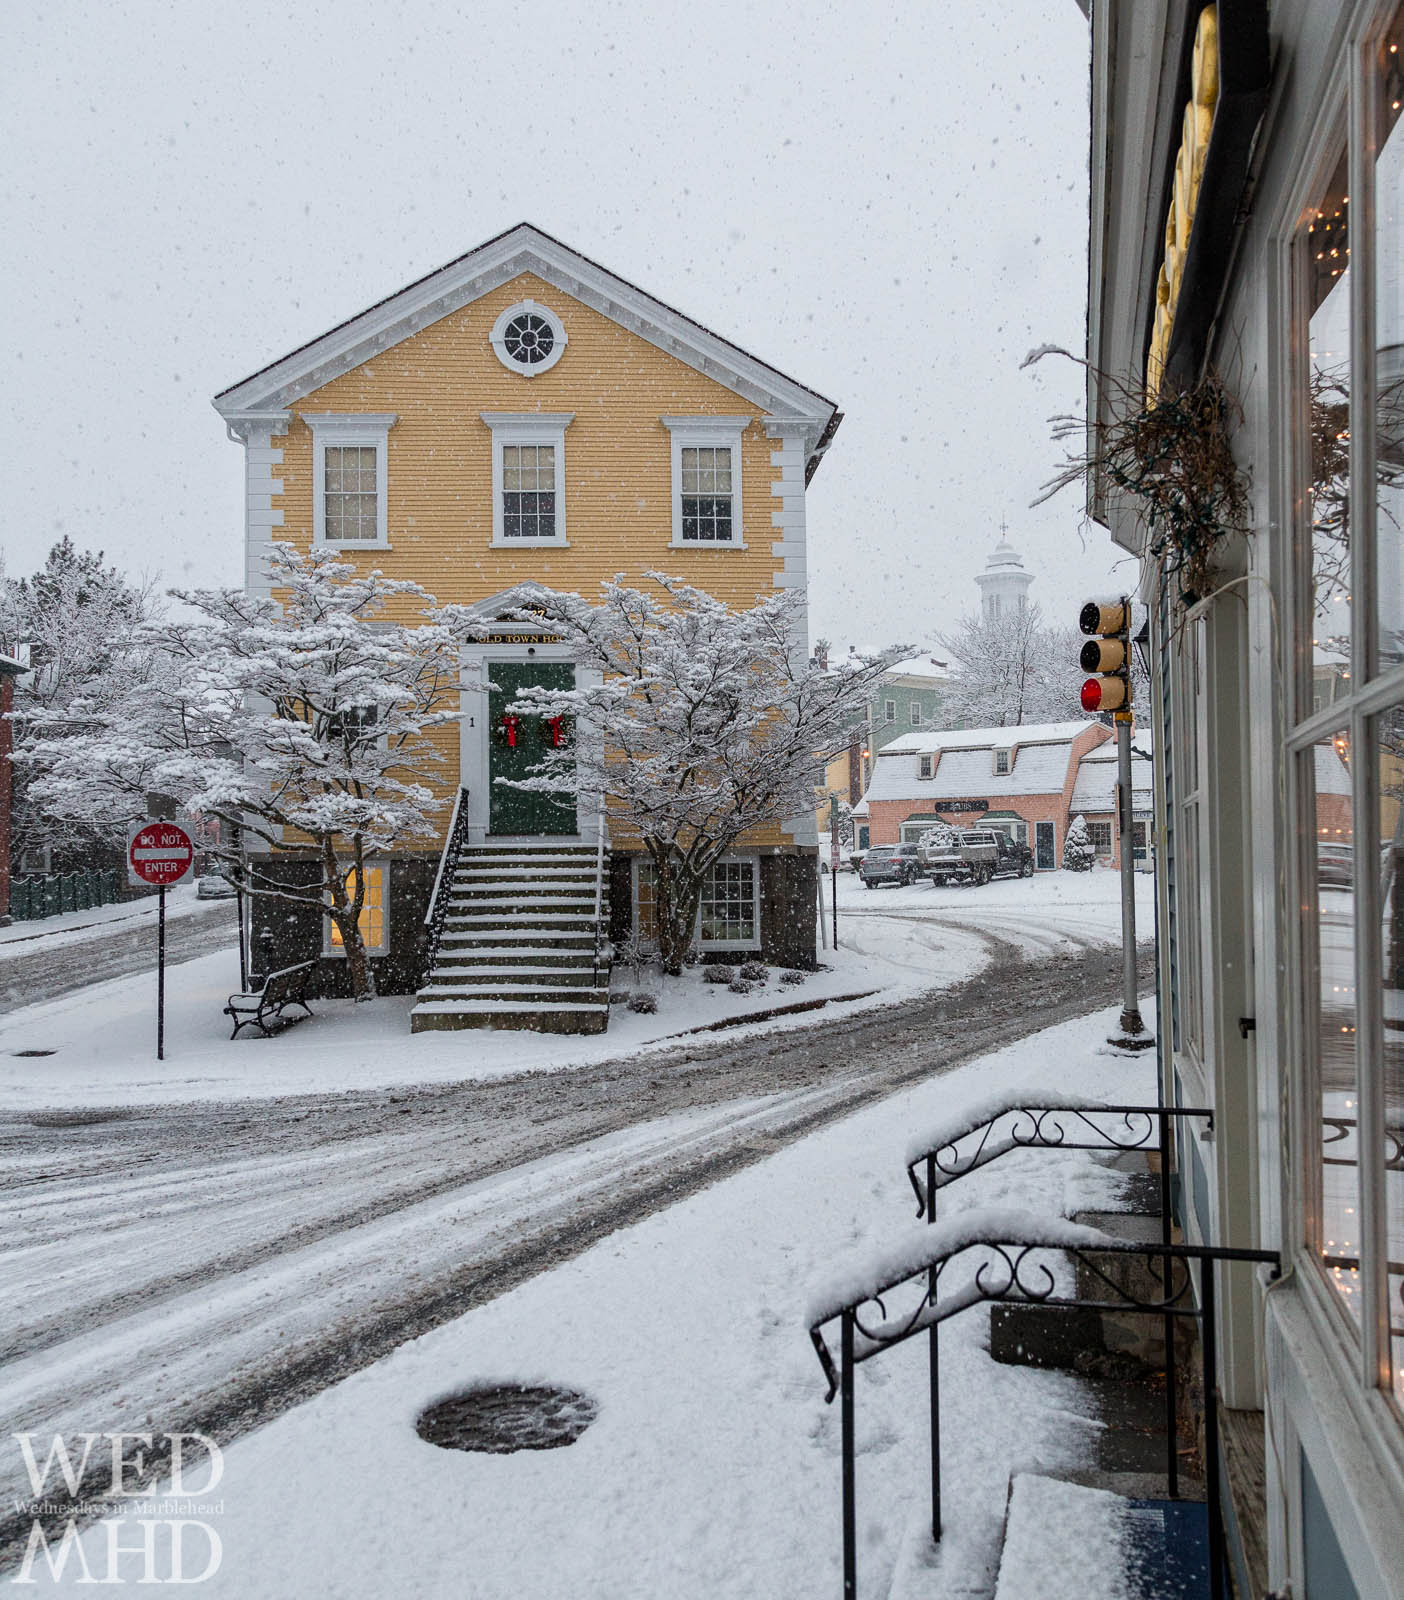 Falling snow surrounds Old Town House creating a picturesque view of historic downtown Marblehead